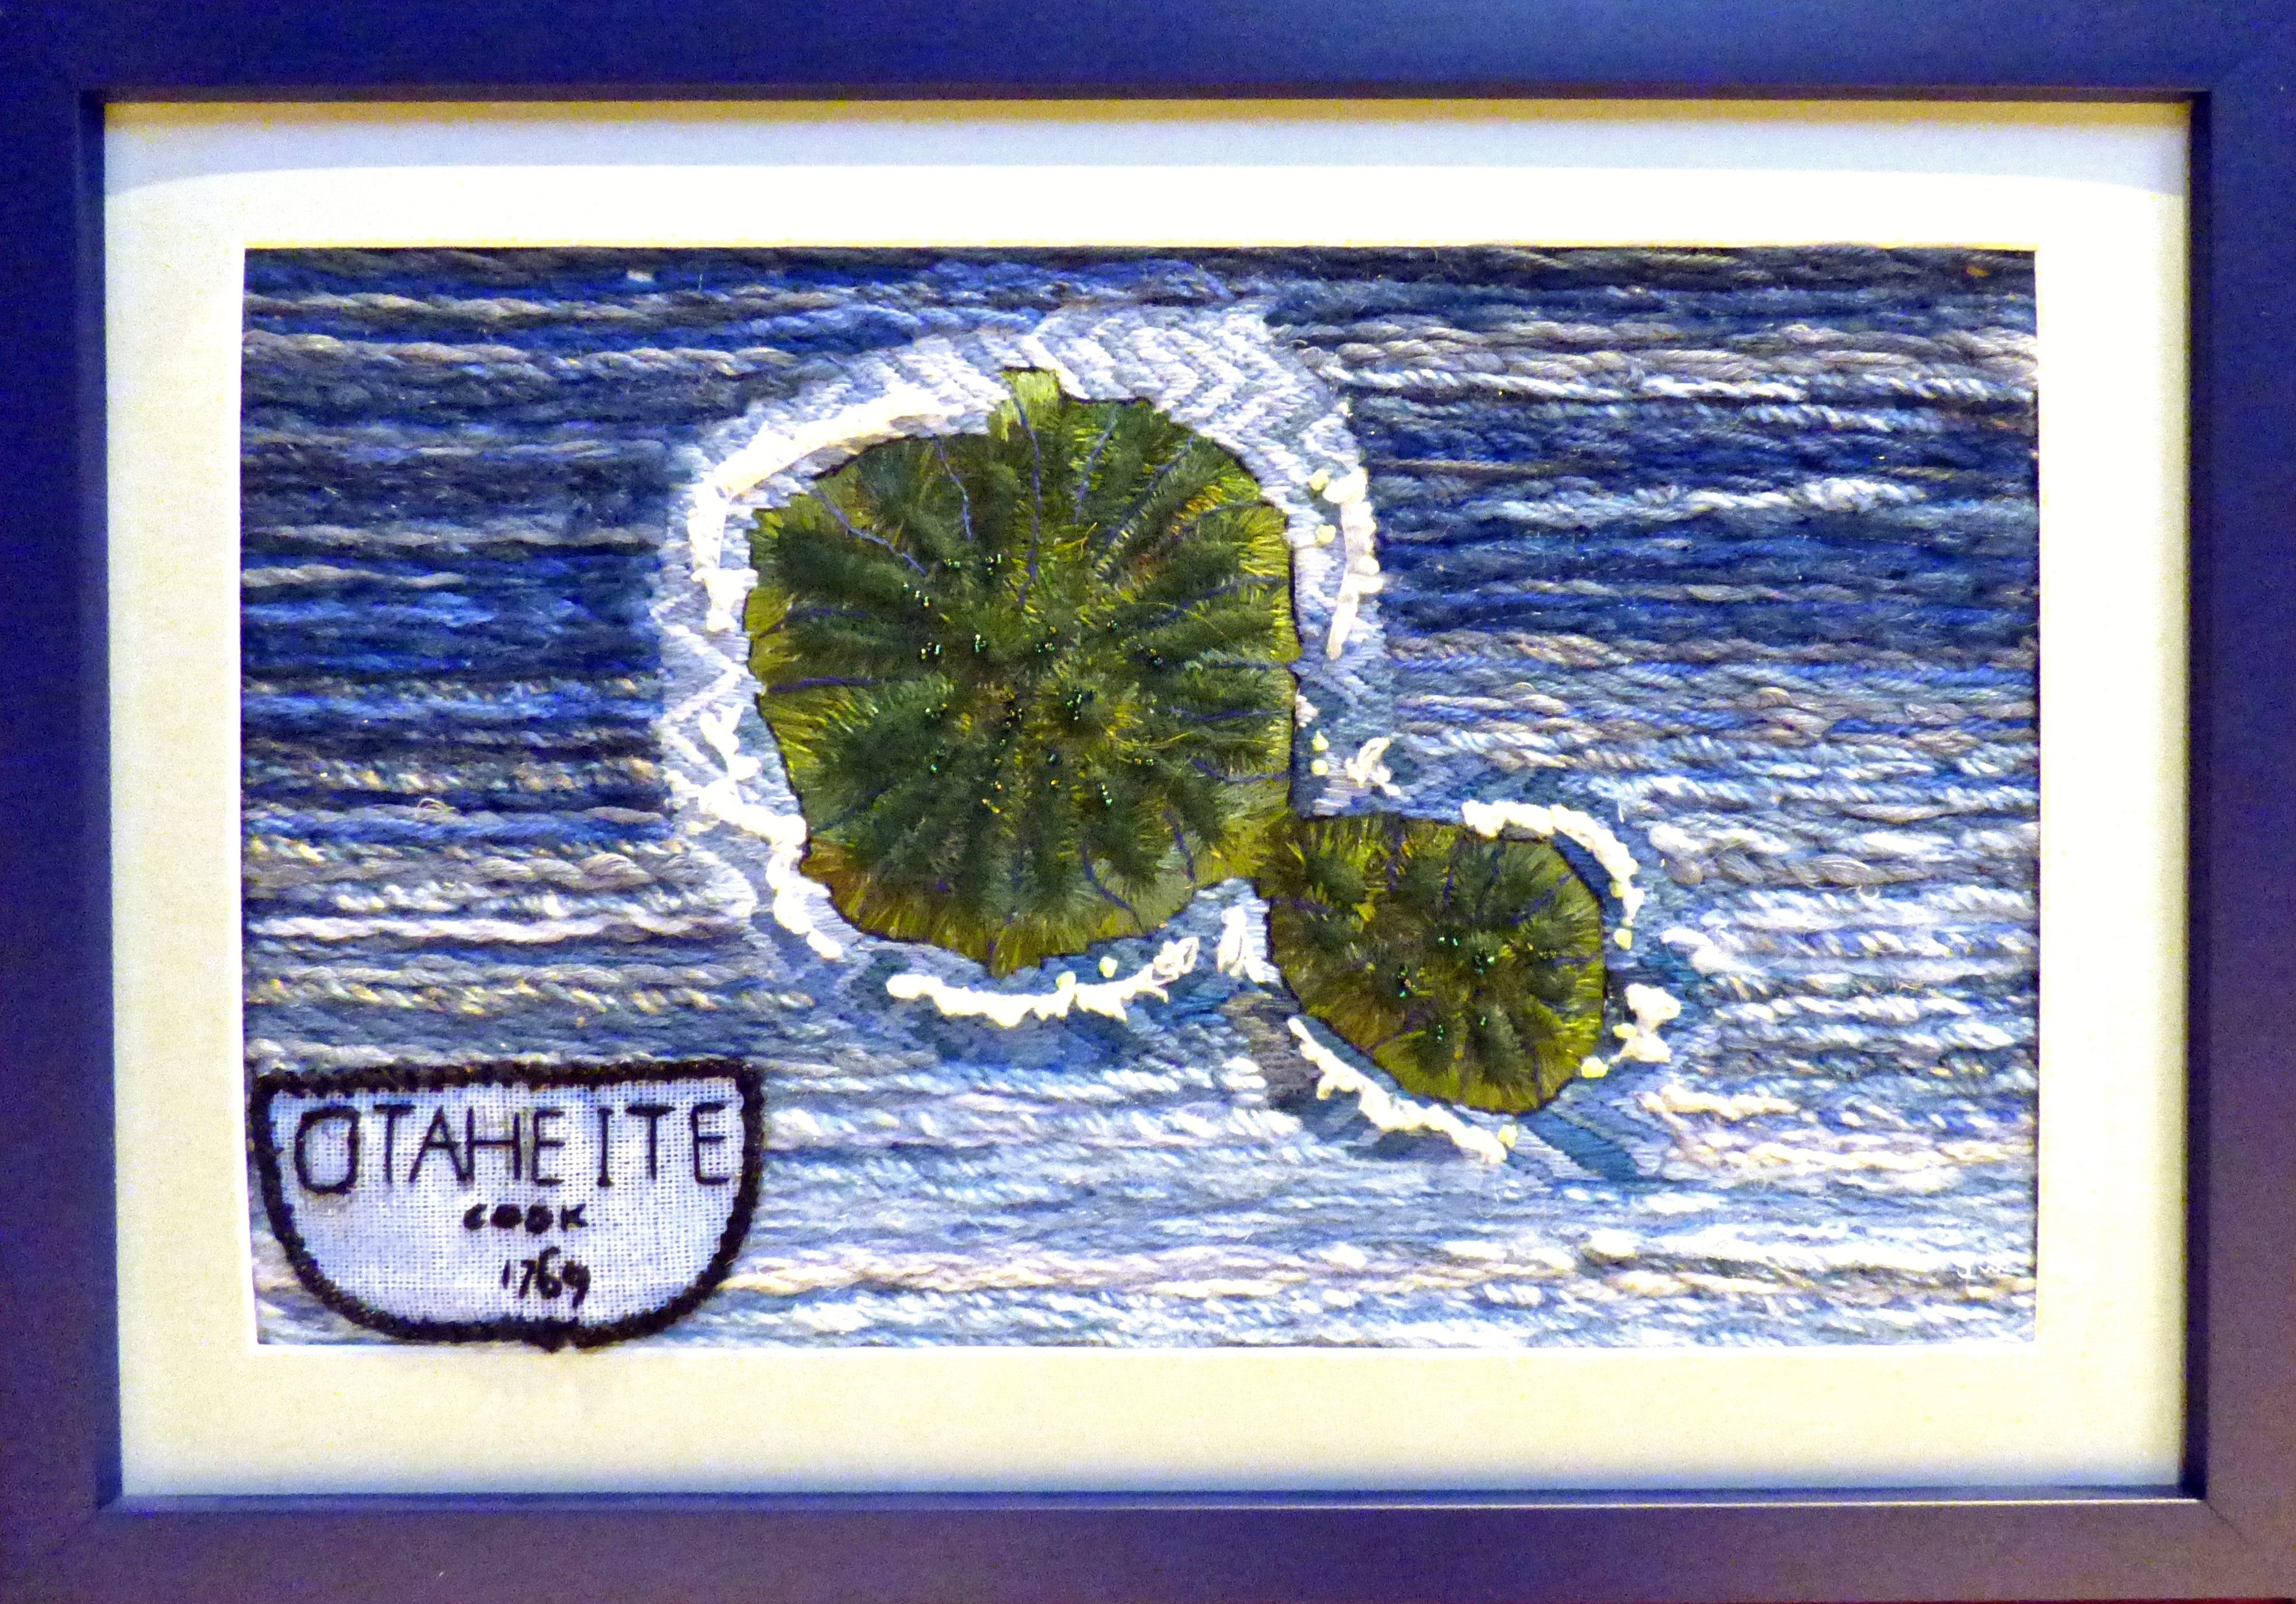 TAHITI by Vicky Williams, hand stitch, Endeavour exhibition, Liverpool Cathedral, Sept 2018